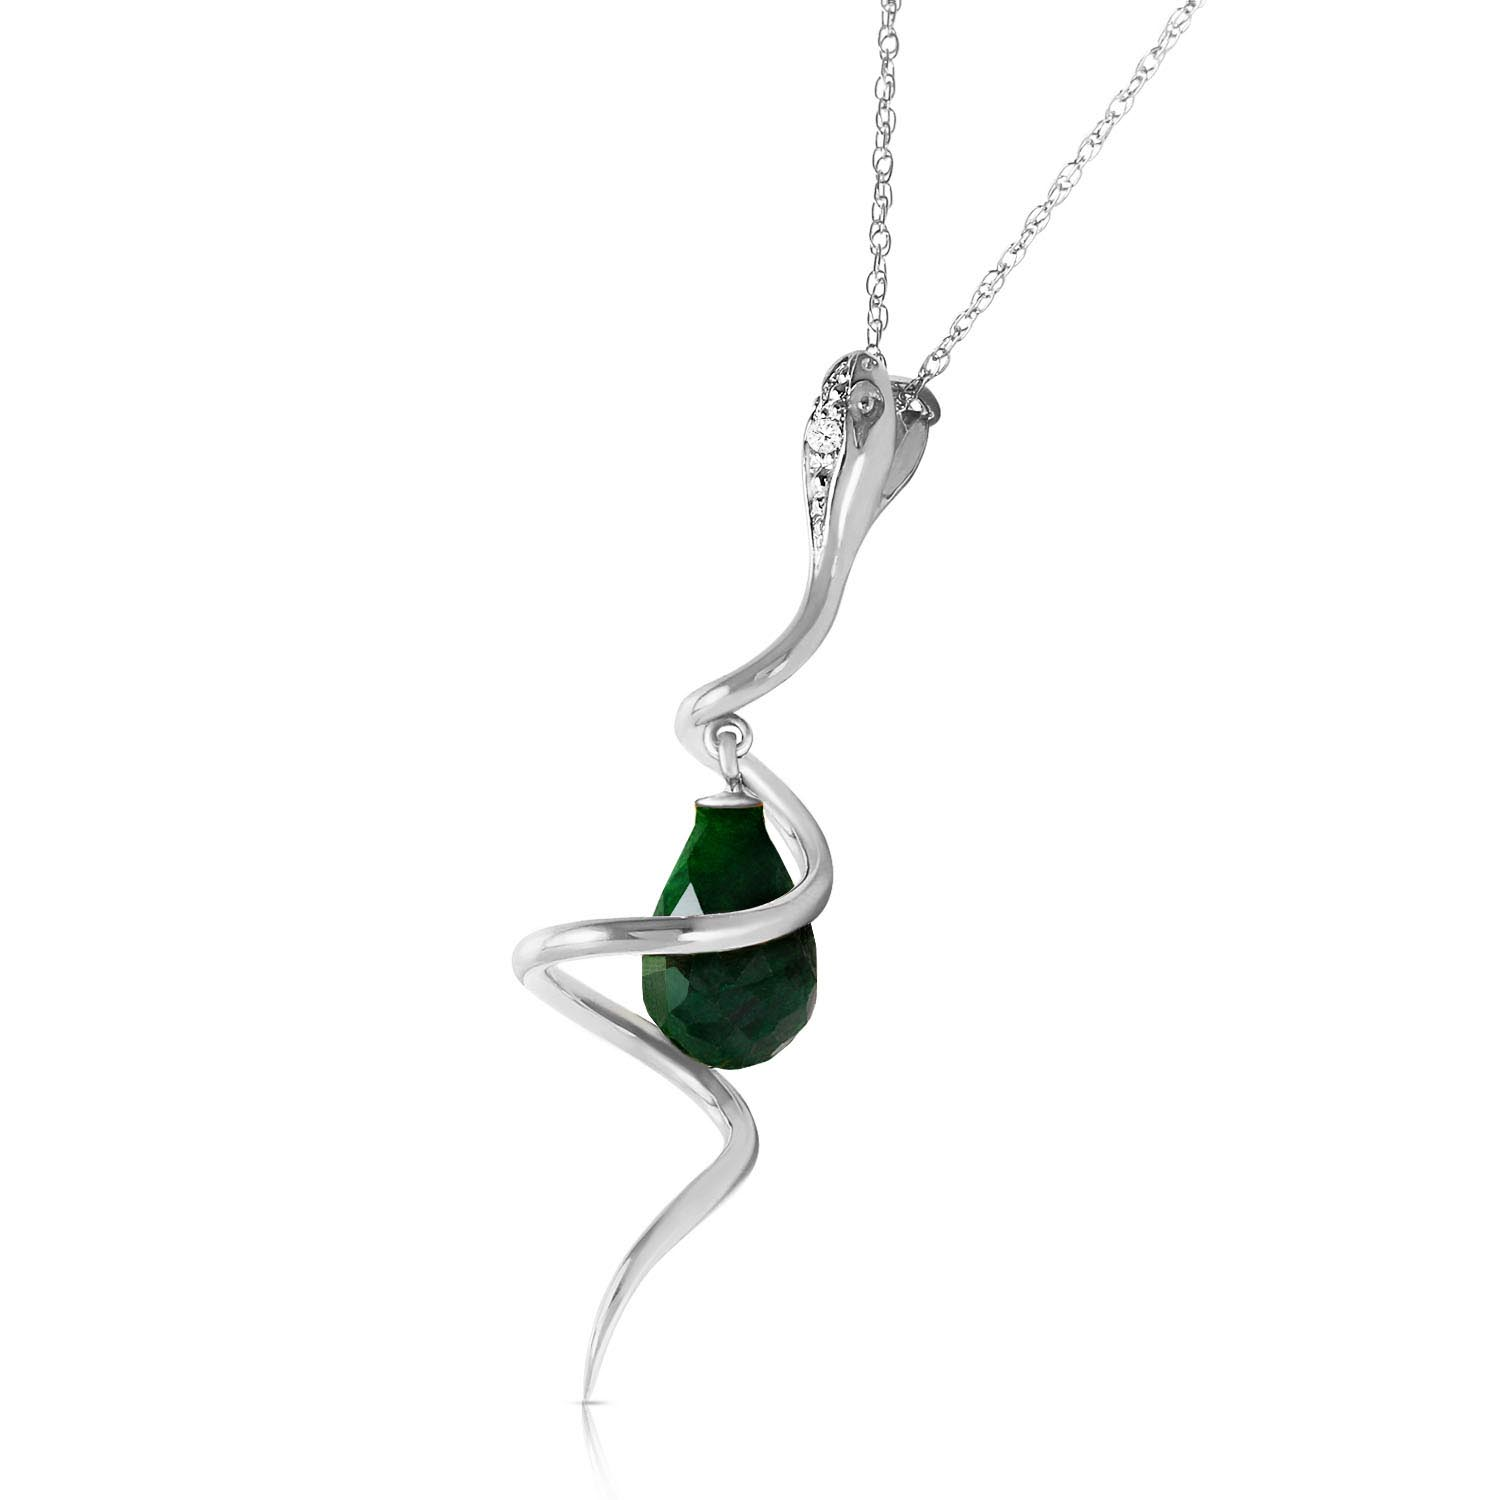 Emerald & Diamond Serpent Pendant Necklace in 9ct White Gold